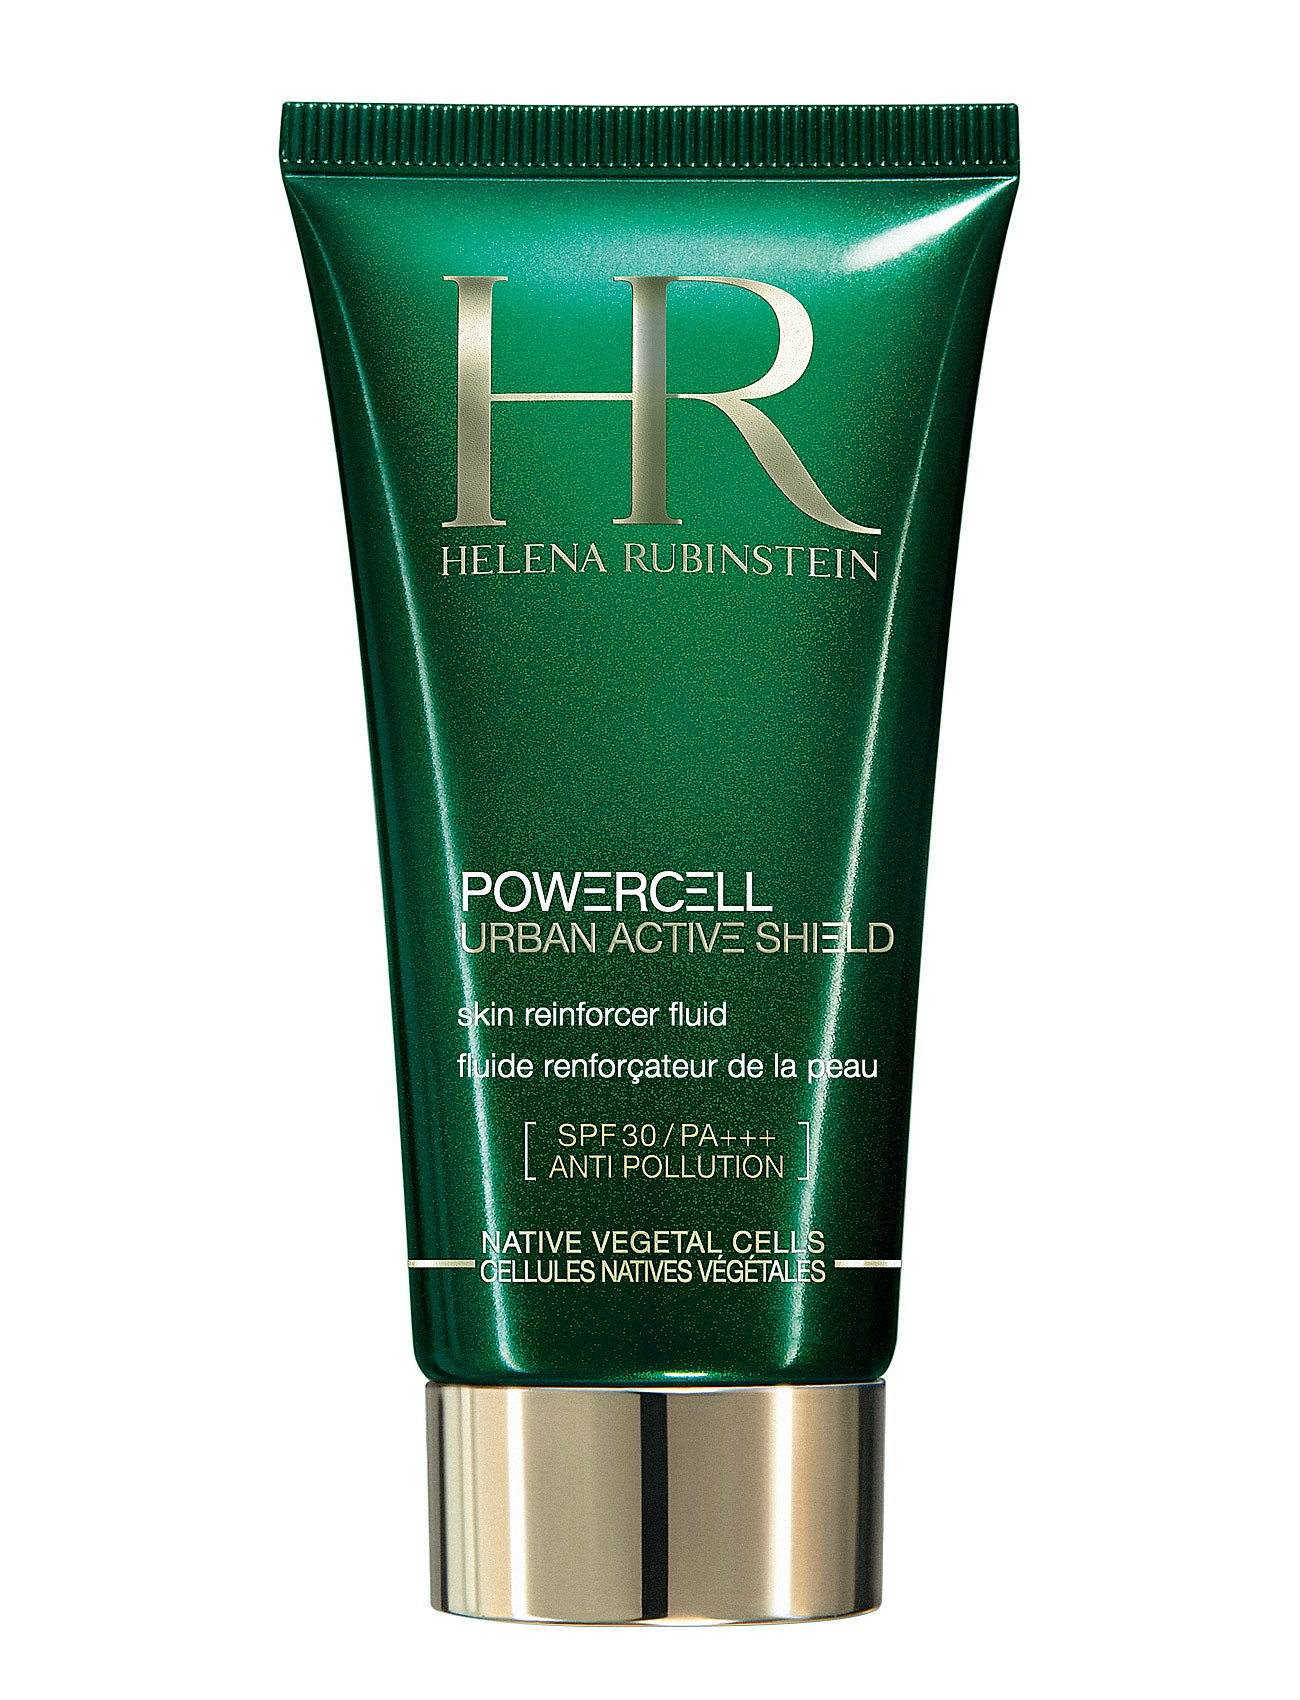 Powercell urban active shield t50 ml fra helena rubinstein på boozt.com dk